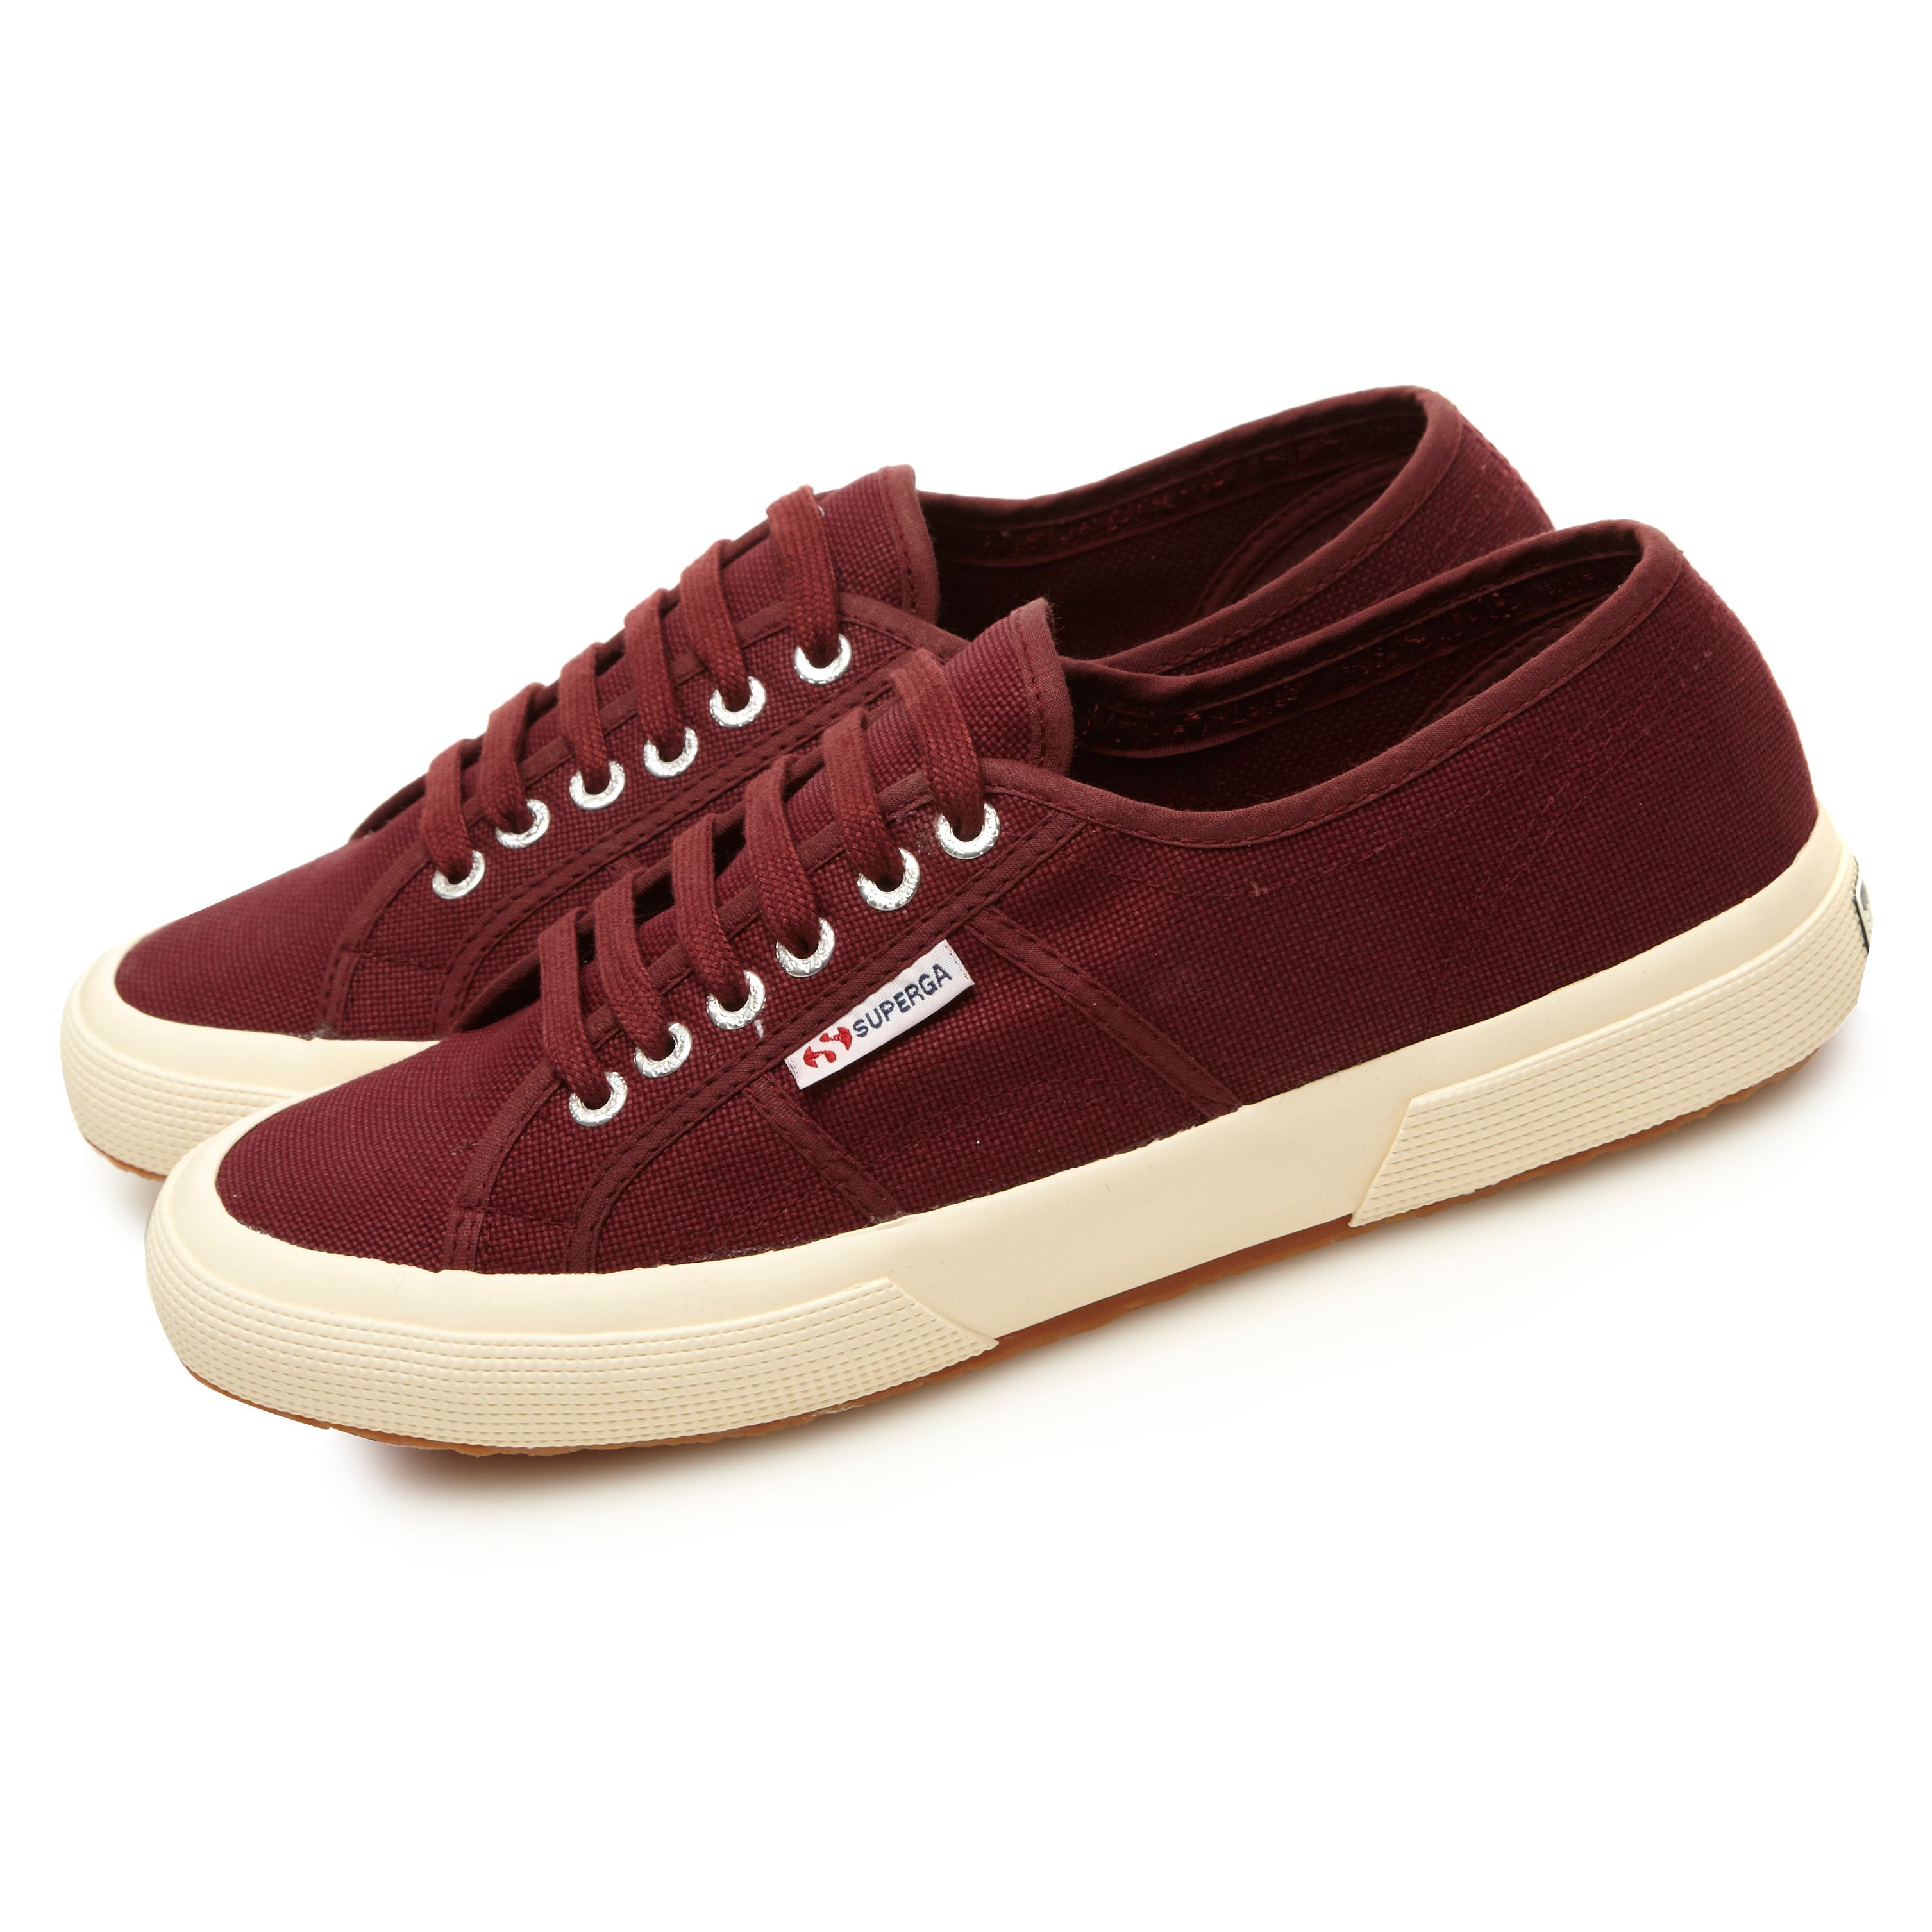 2750 classic oxford lace up trainers